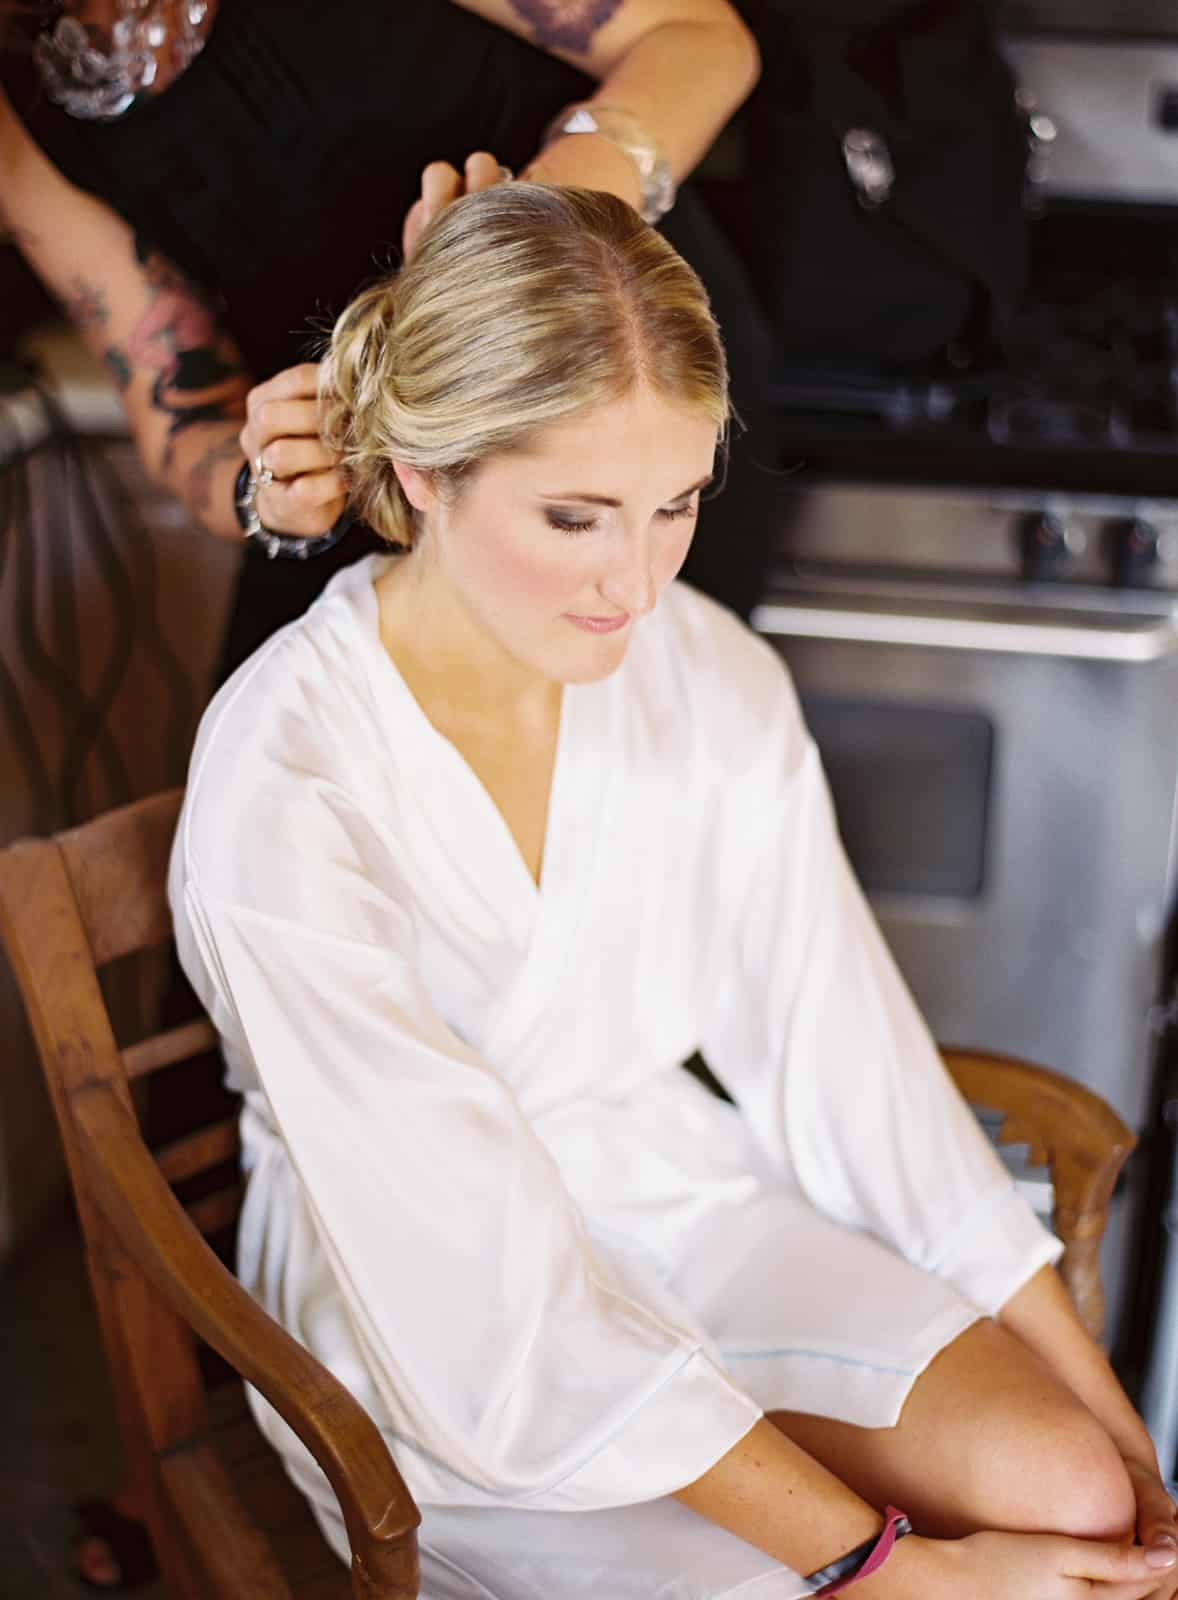 bride getting ready hair